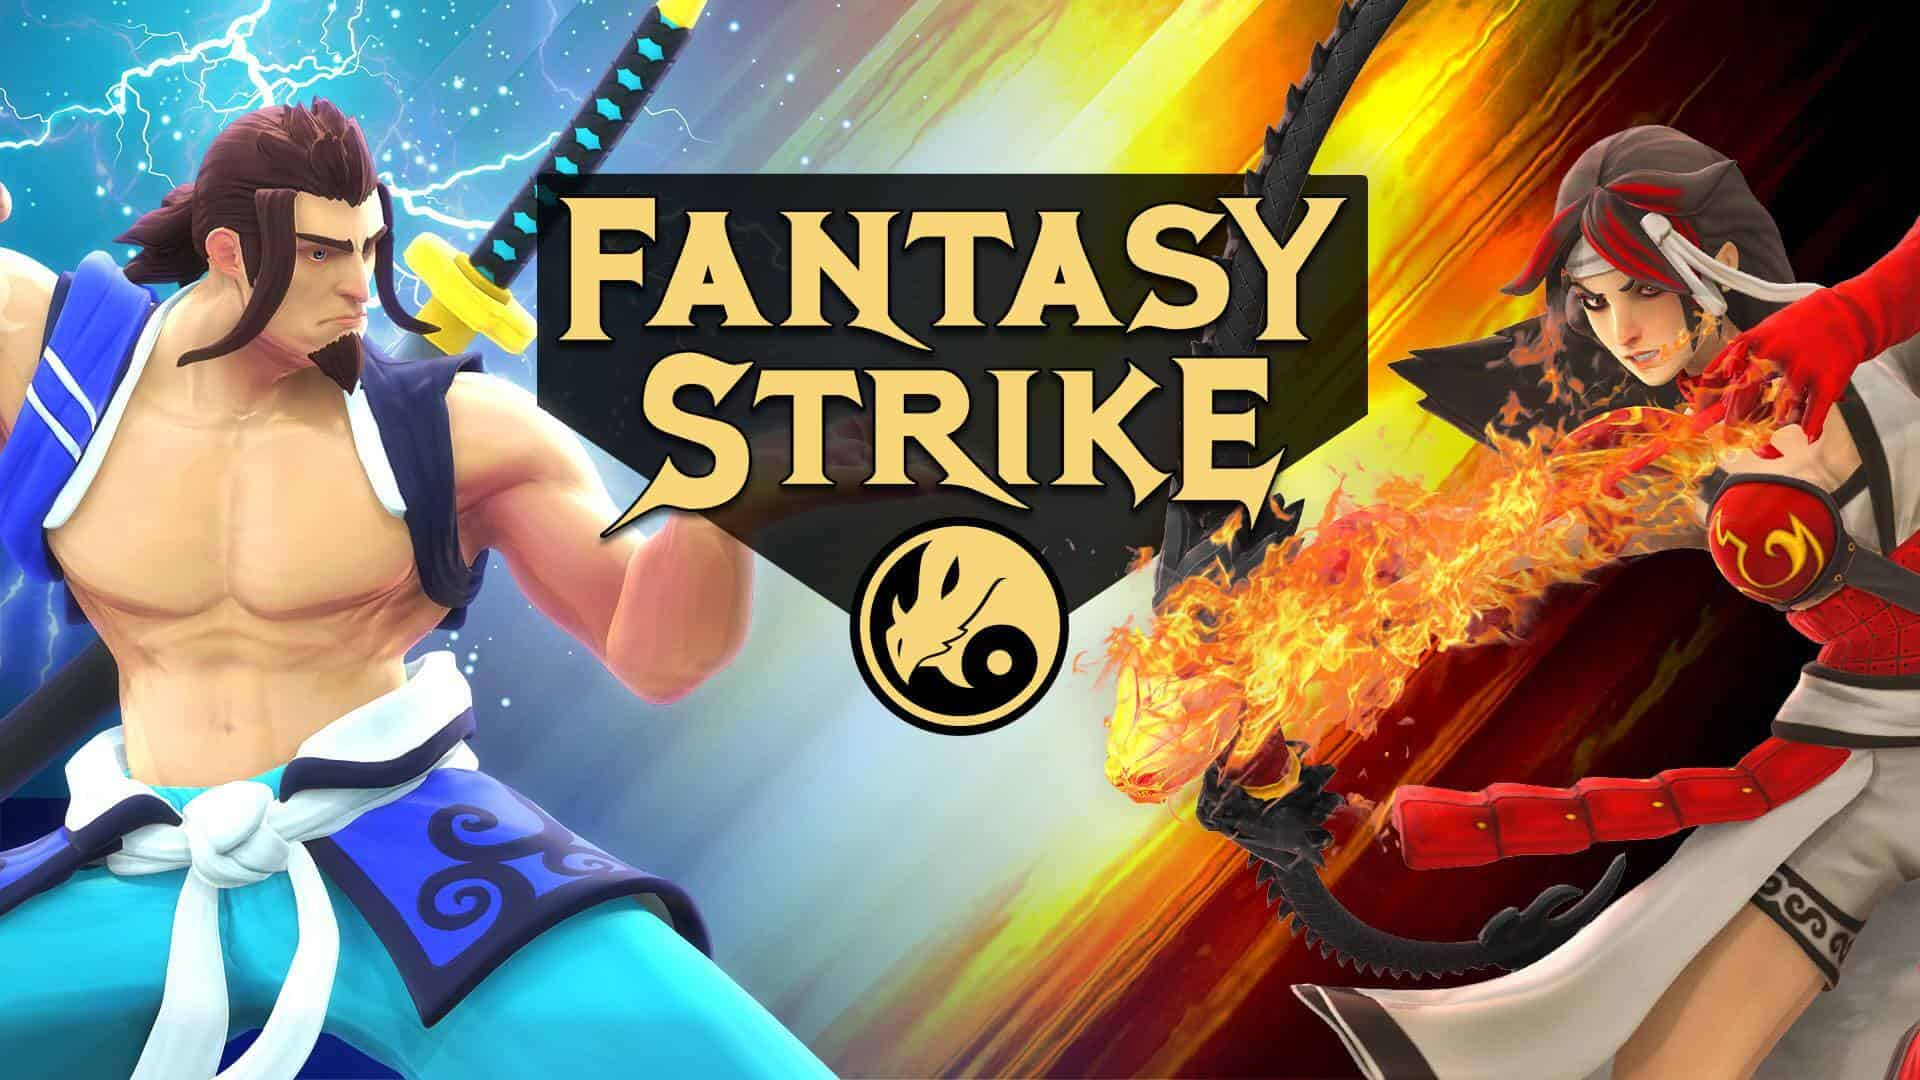 Fantasy Strike Now Available For Nintendo Switch, PlayStation 4, PC